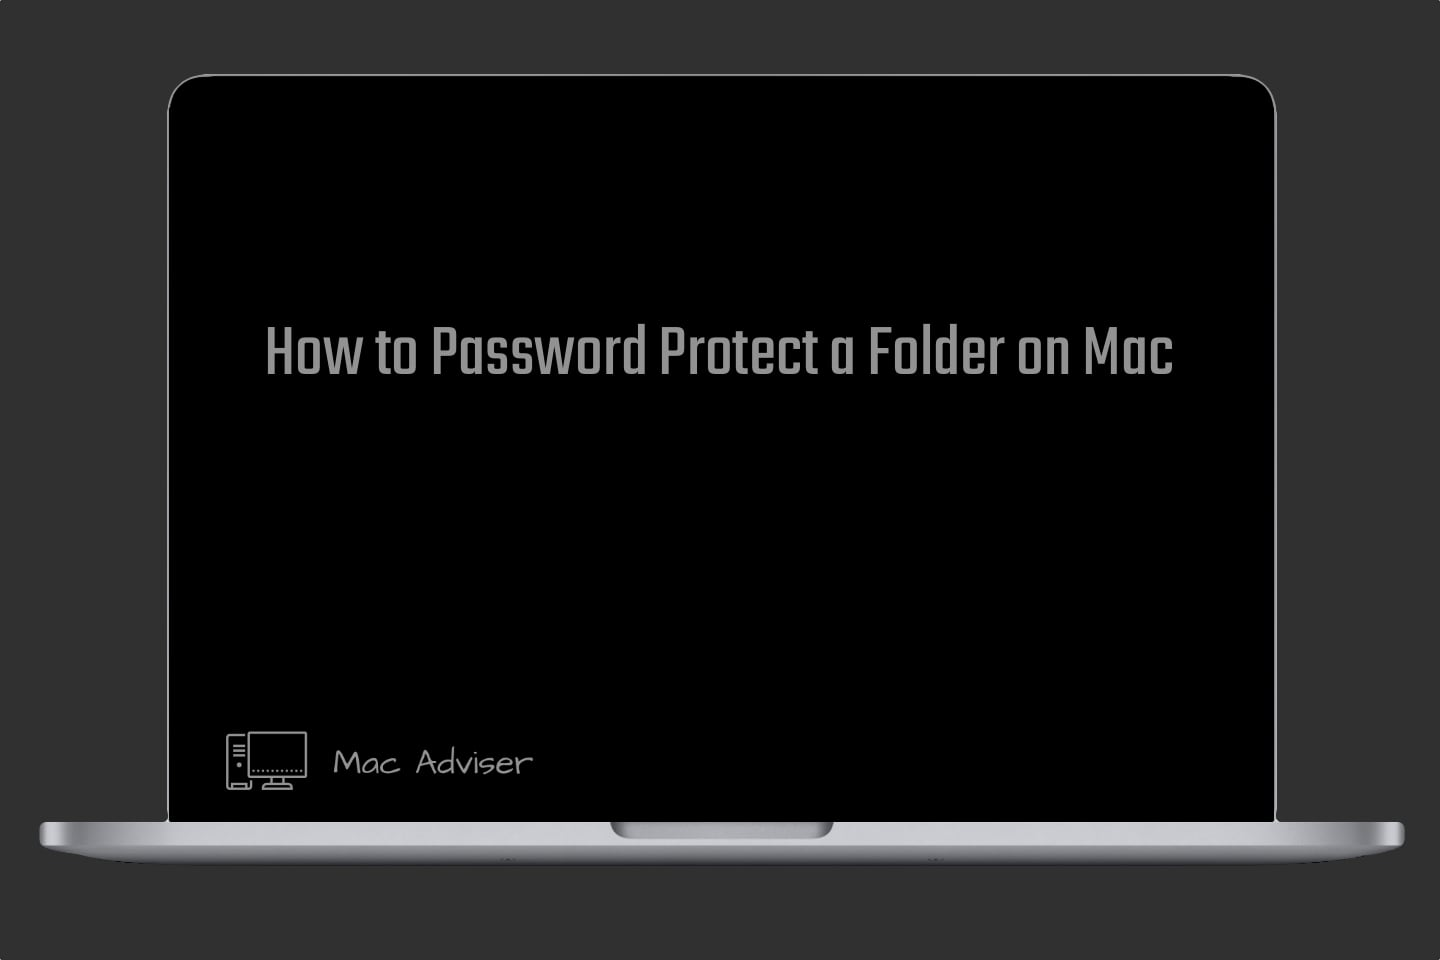 How to Password Protect a Folder on Mac,How to Password Protect a File on Mac,How to Password Protect a PDF on Mac,password protect a folder on mac,password protect a pdf on mac